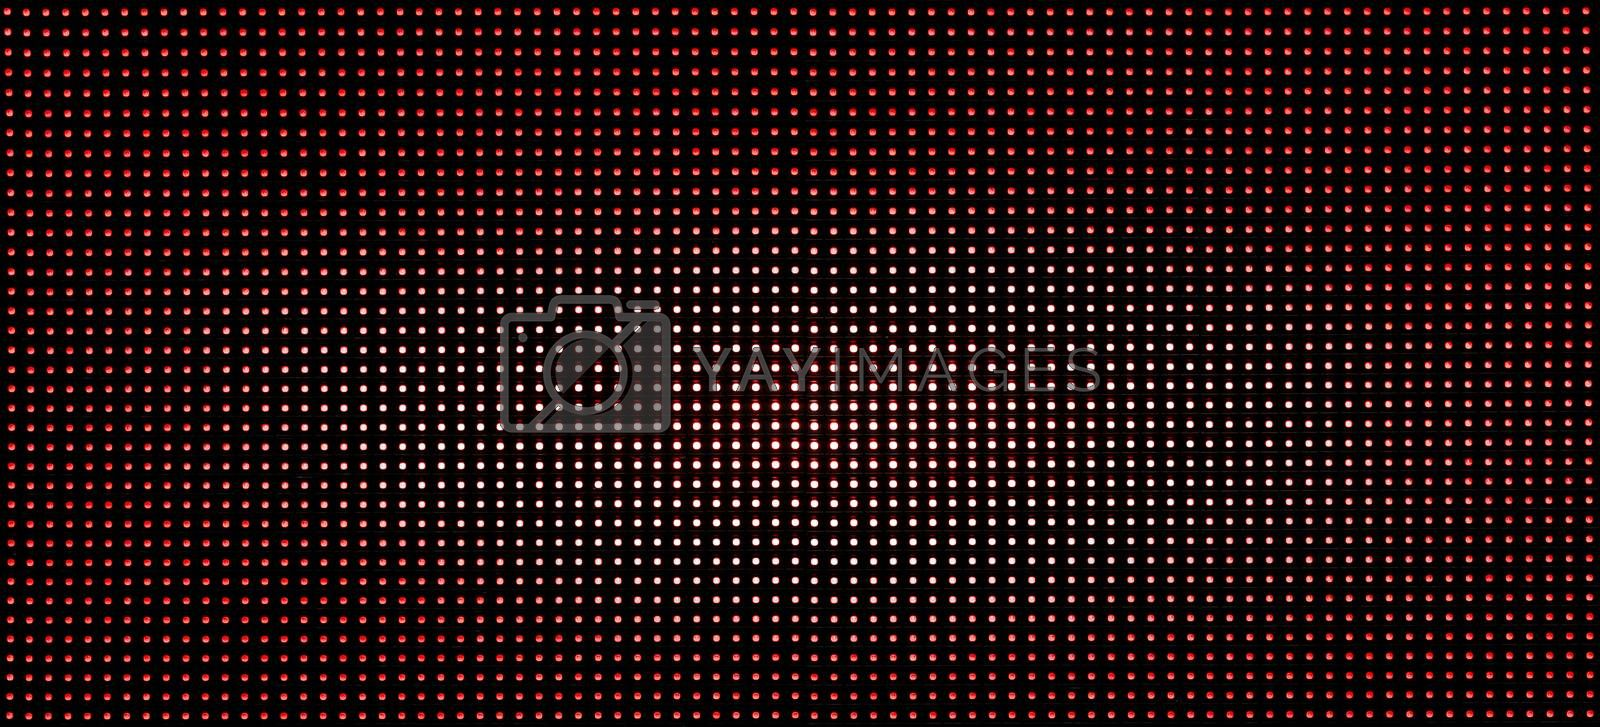 pattern luminous red and white led dots lights on black background